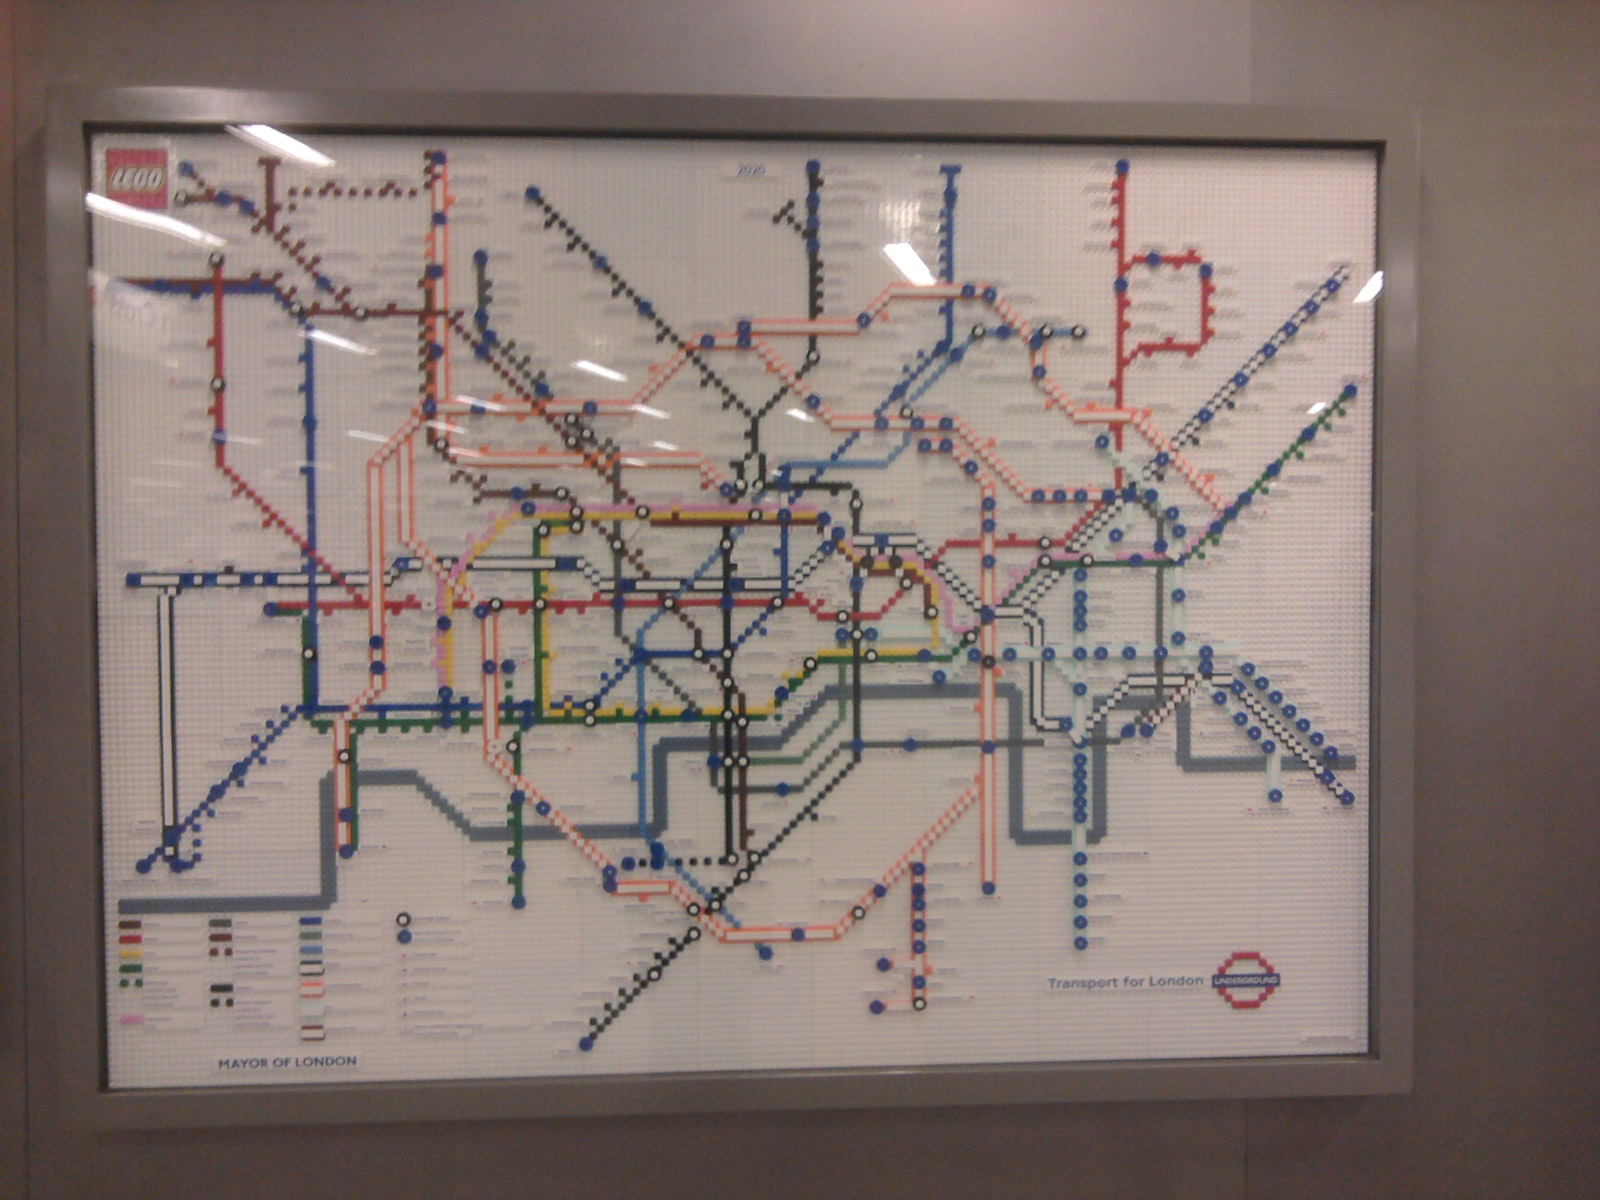 LEGO Underground map showing future Crossrail in Kings Cross ticket hall